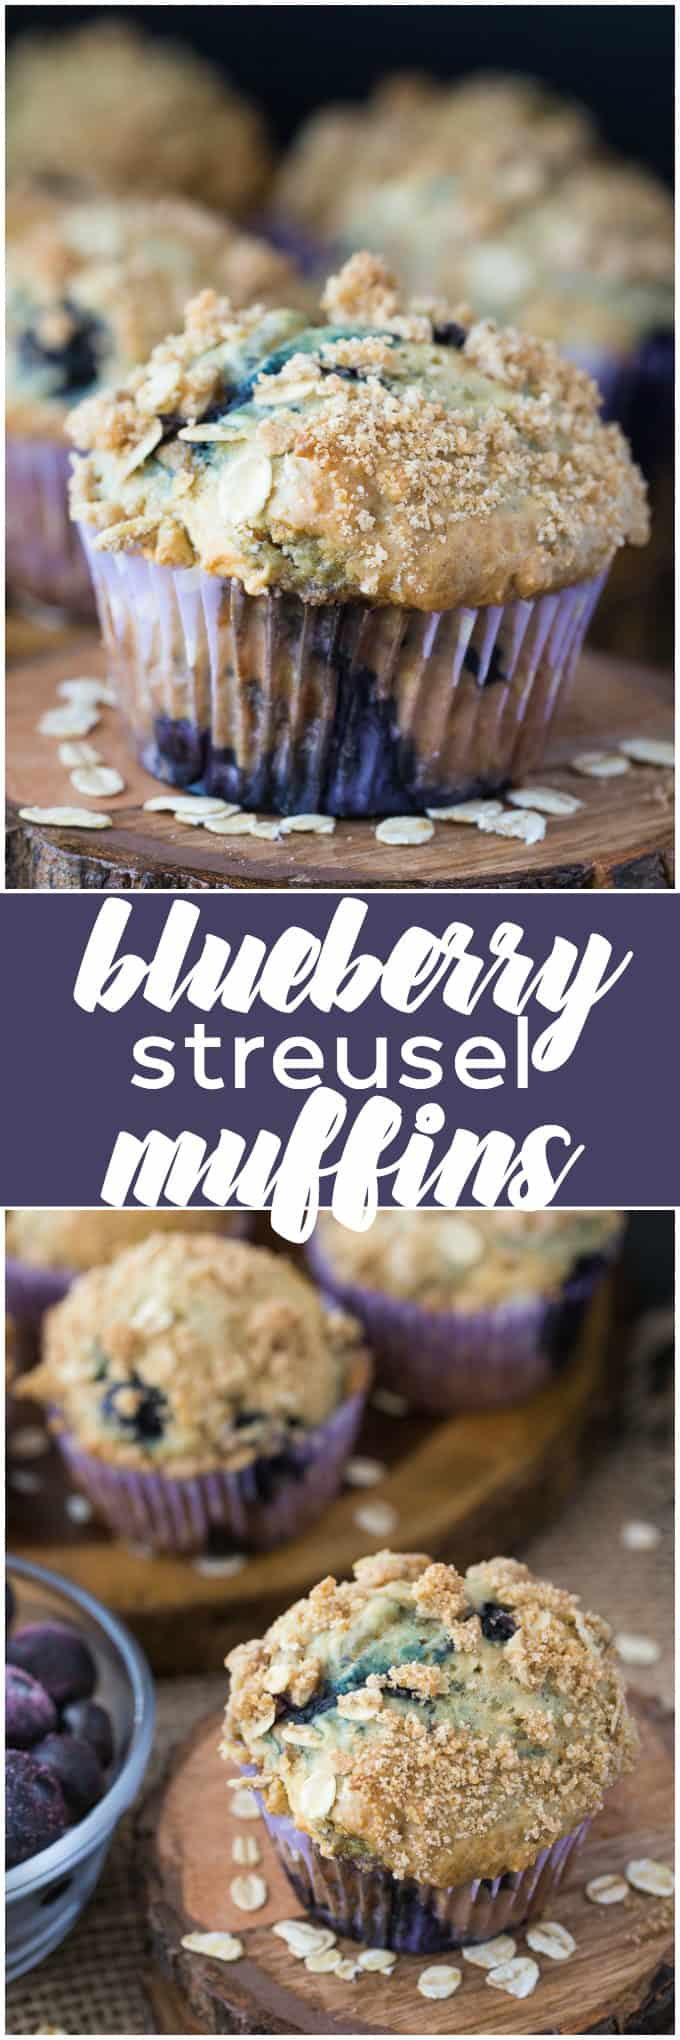 Blueberry Streusel Muffins - Cinnamon sugar topping sets these blueberry muffins apart! Packed with sweet blueberries and topped with a crunchy oat topping, these muffins are delicious fresh out of the oven with a little butter.